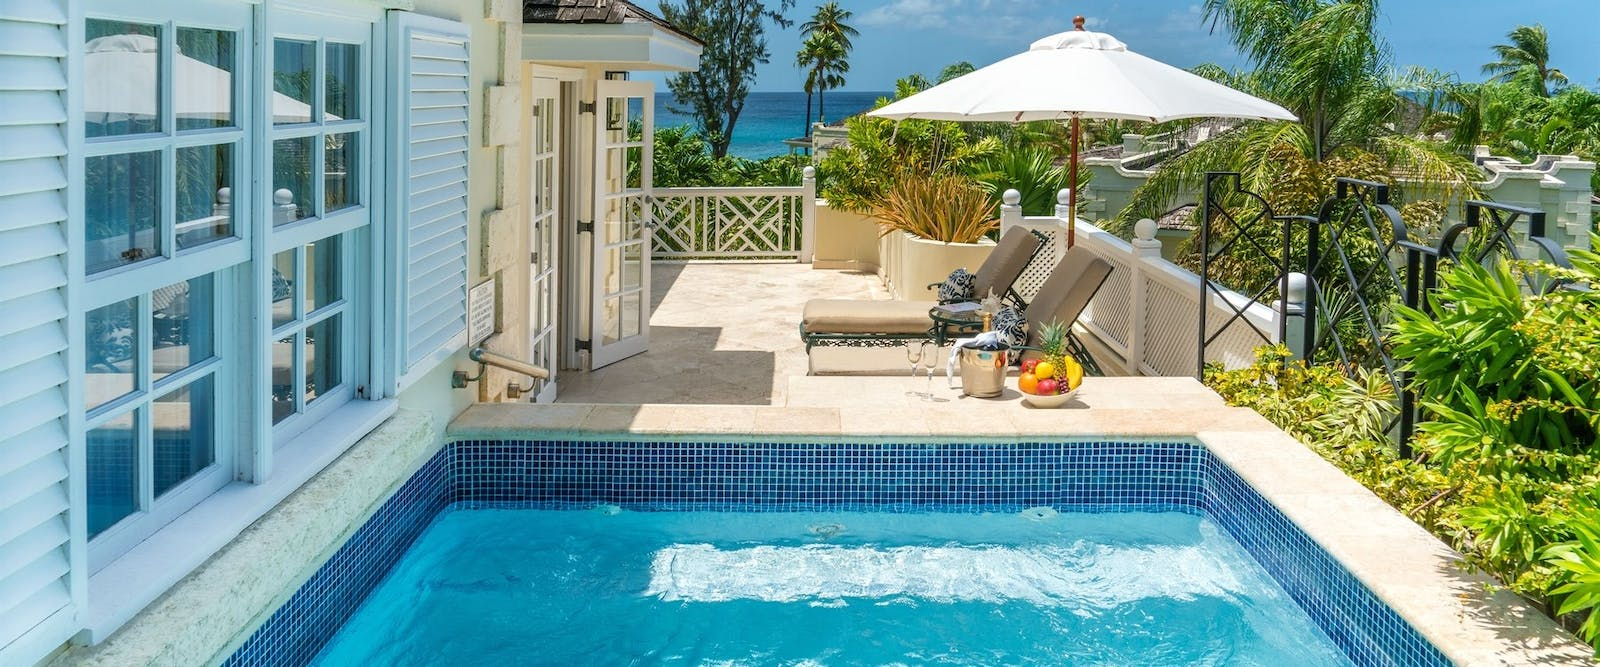 Luxury Plantation Suite Plunge Pool at Coral Reef Club, Barbados